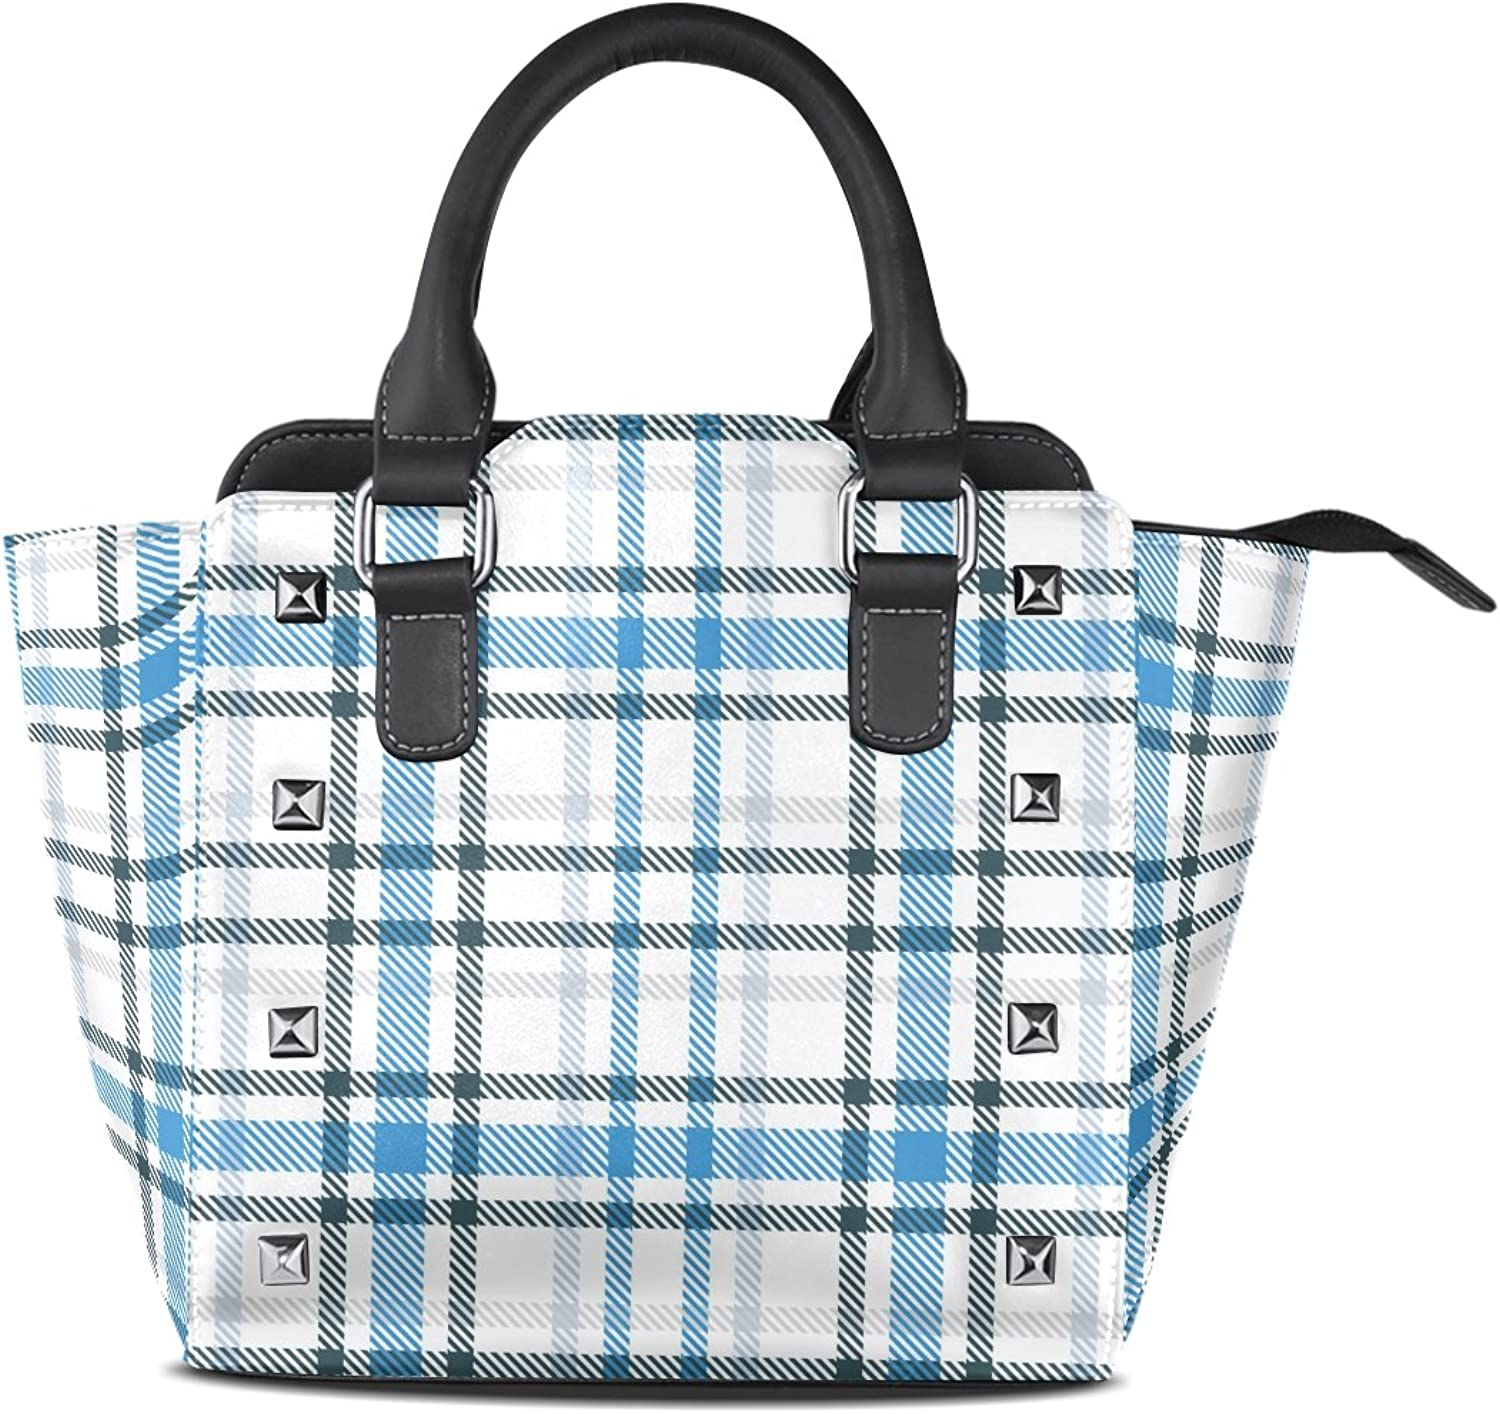 My Little Nest Women's Top Handle Satchel Handbag Fashion bluee and White Tartan Ladies PU Leather Shoulder Bag Crossbody Bag